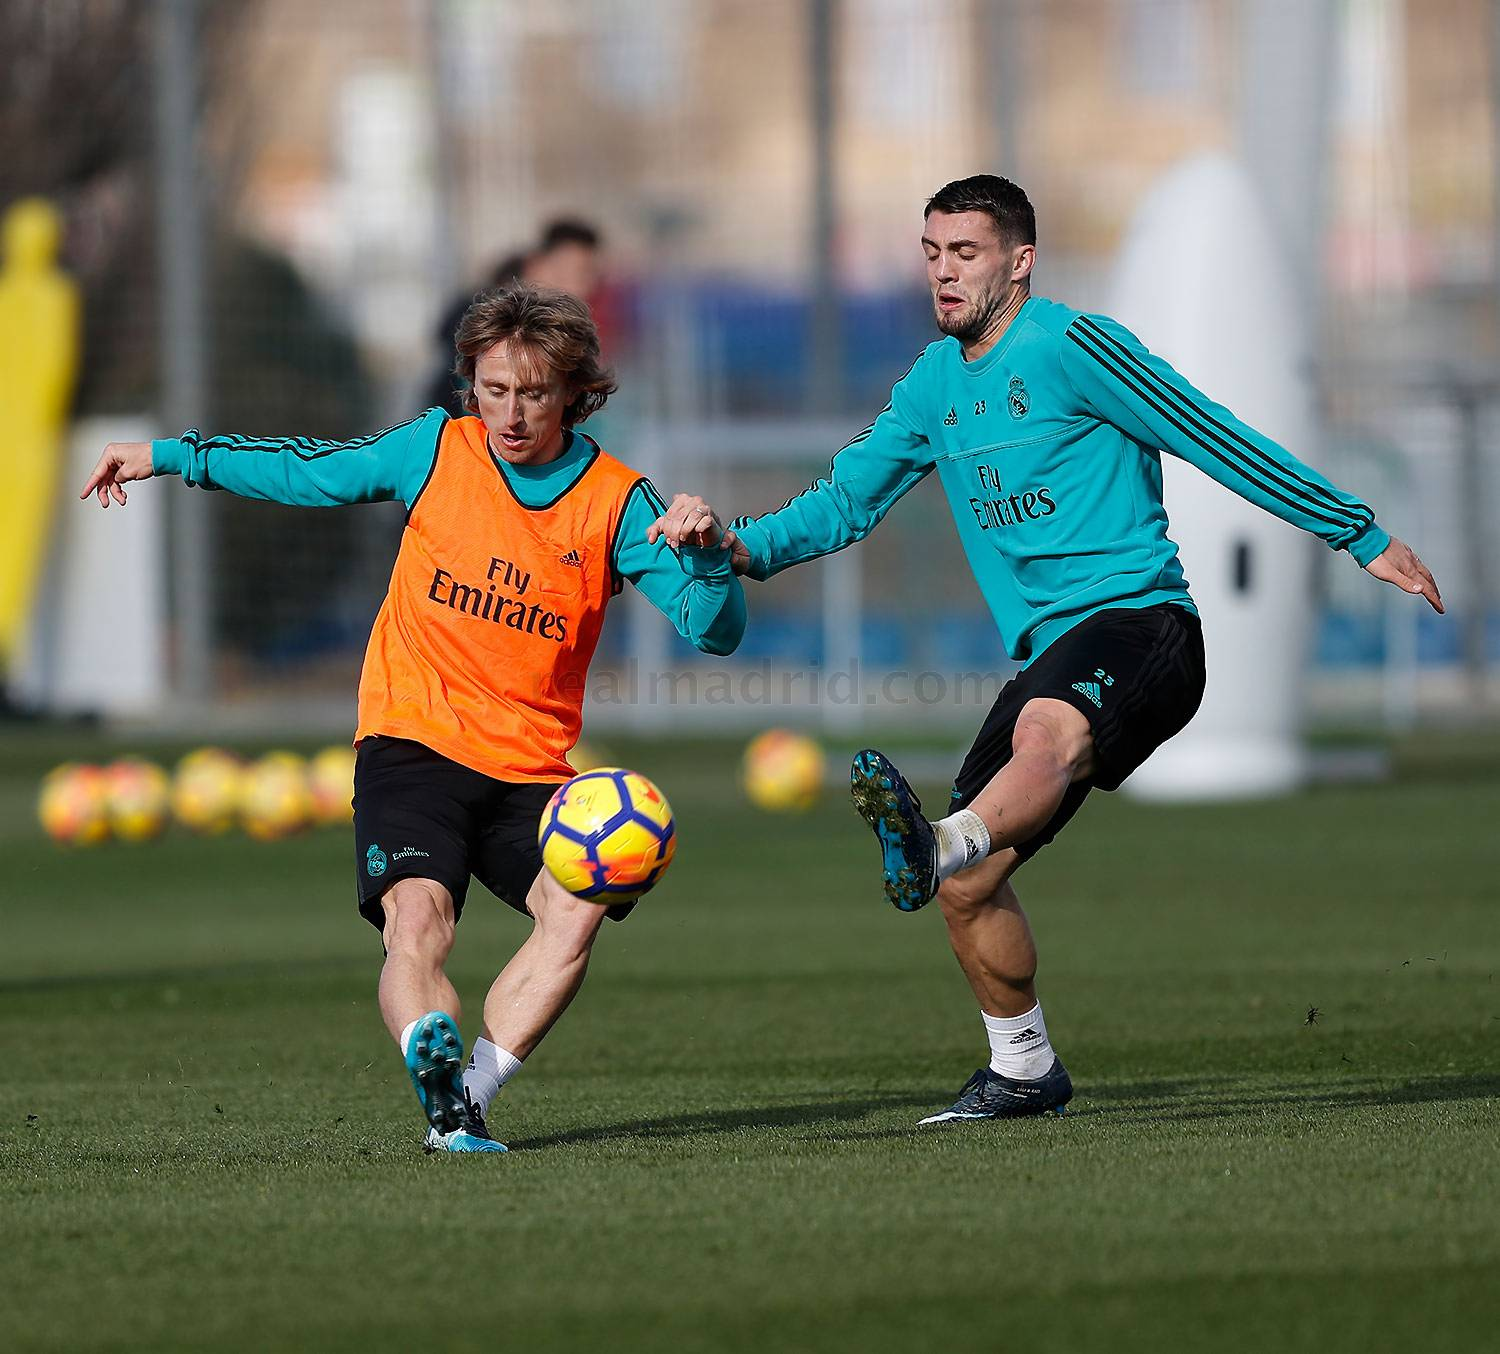 Real Madrid - Entrenamiento del Real Madrid - 26-01-2018